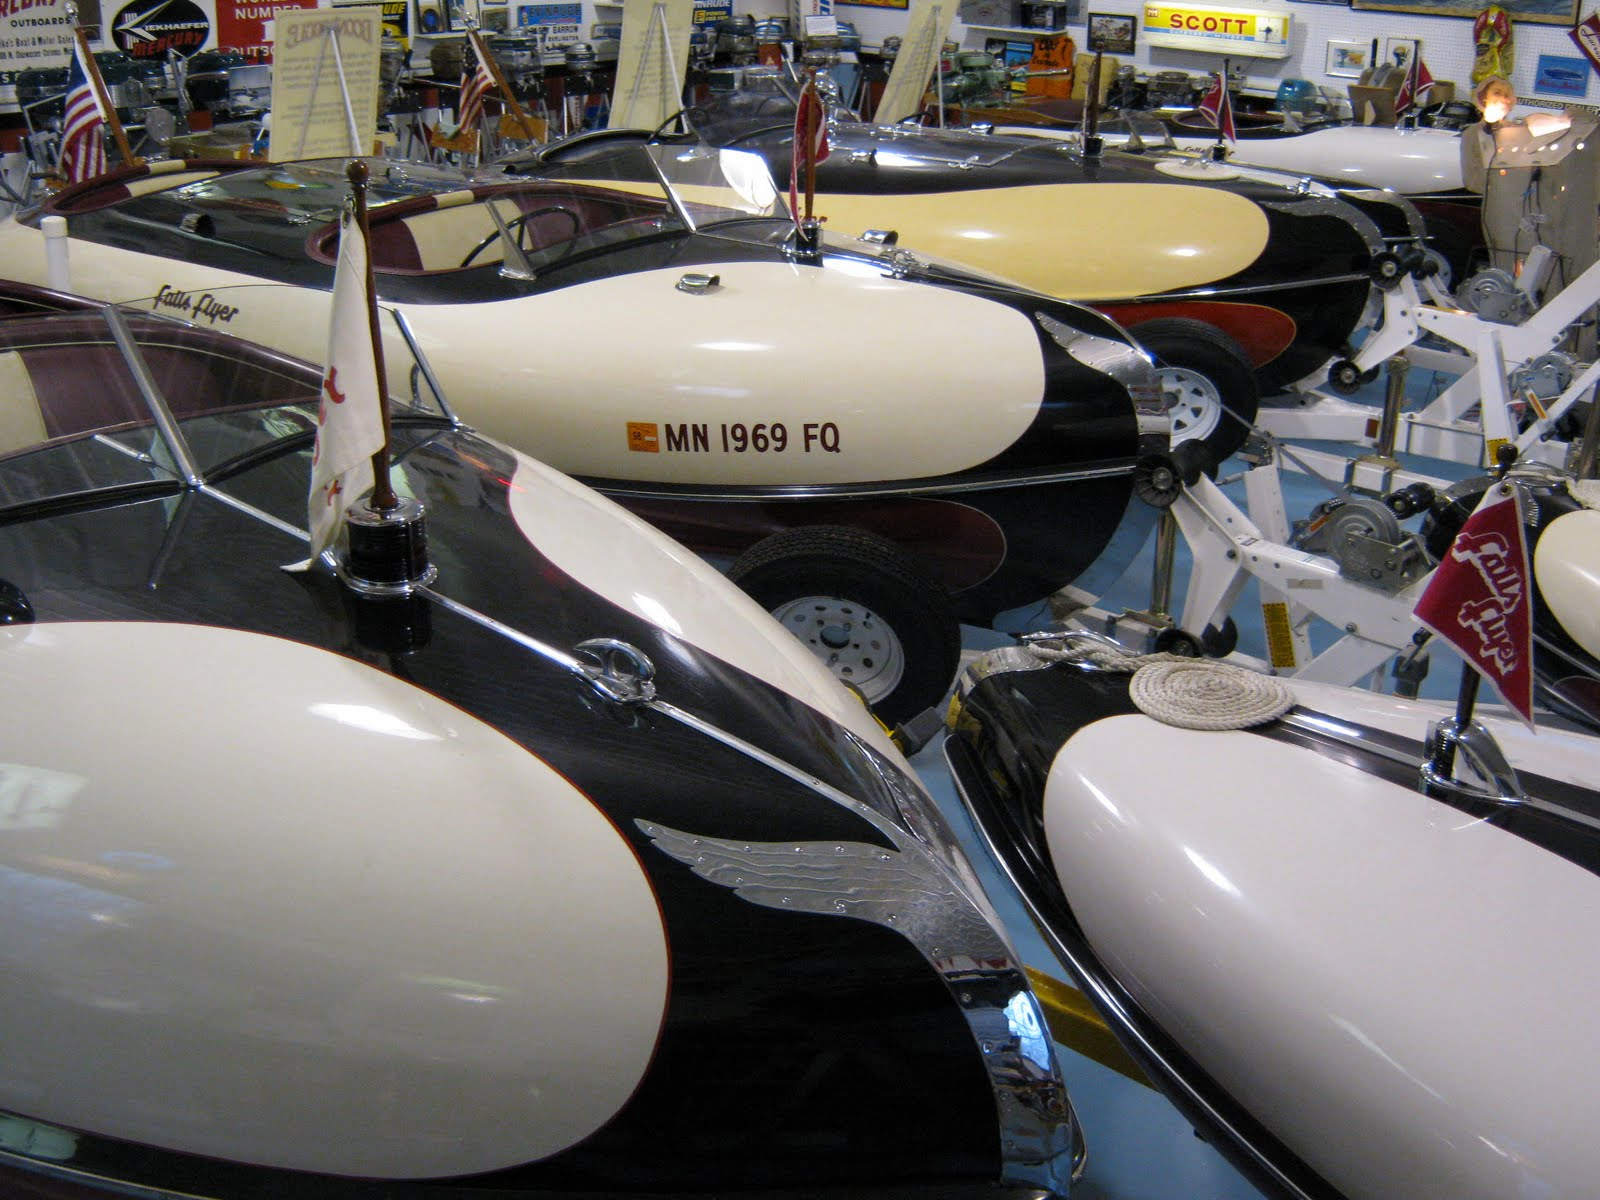 mikkelson collection tour the worlds largest collection of larson falls flyers classic boats woody boater woody boater